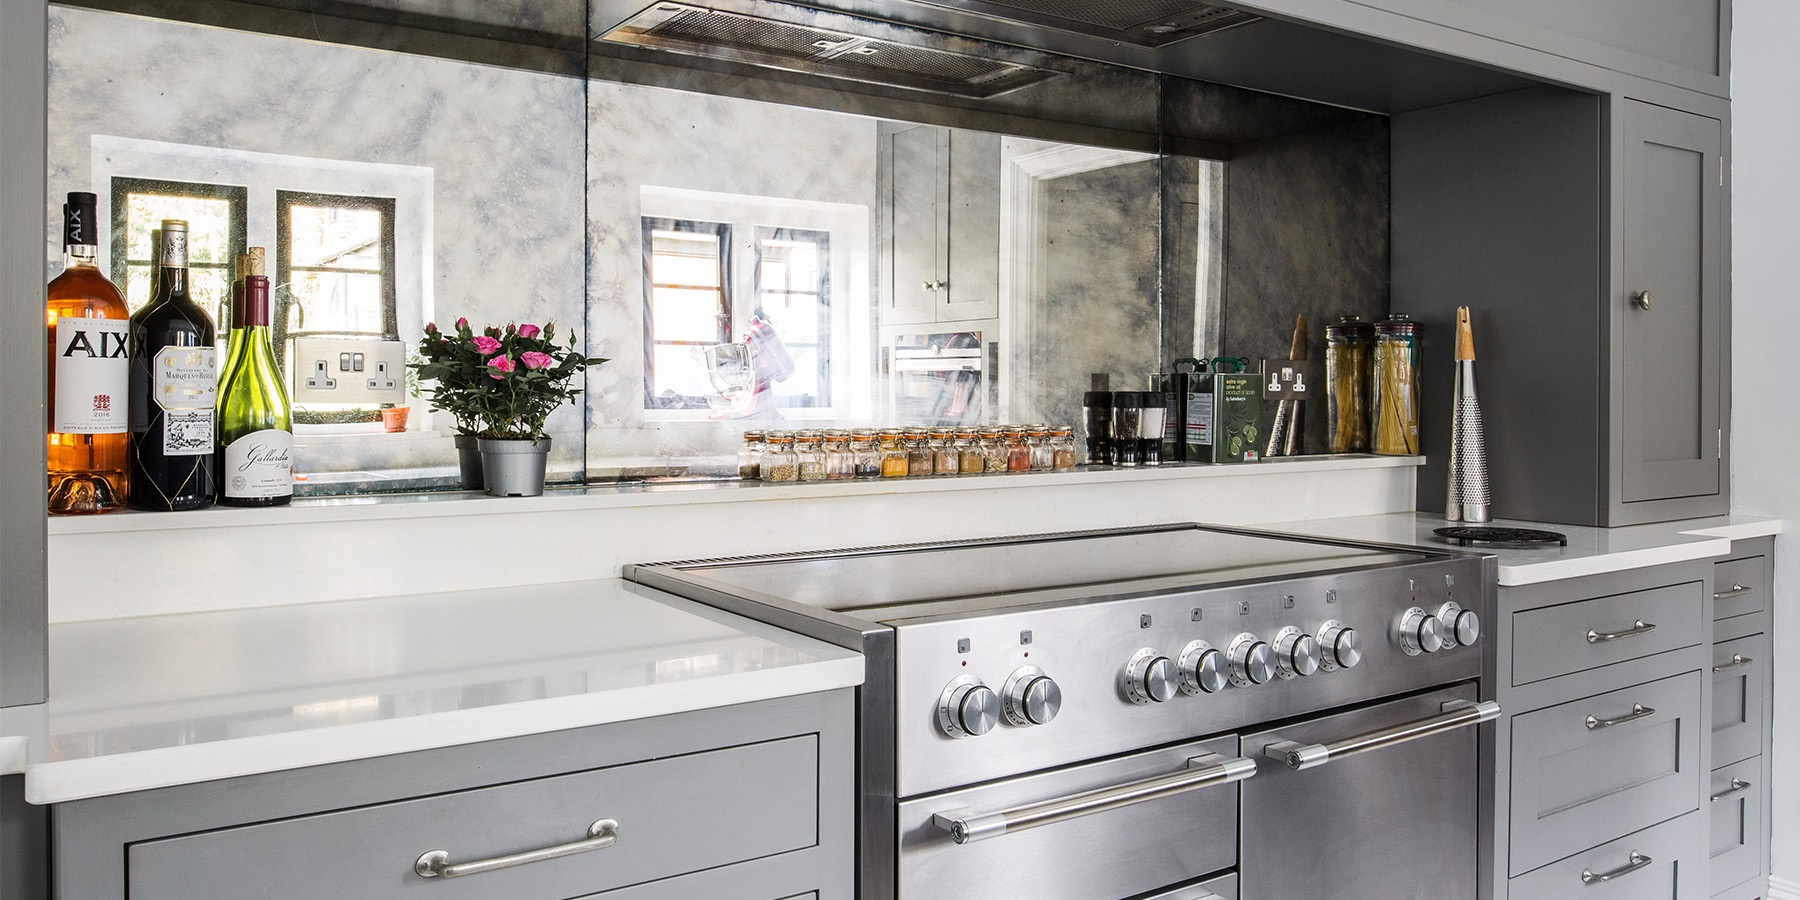 Burlanes Interiors - Burlanes design and handmake bespoke kitchens of the highest quality. We have interior showrooms in Kent and Essex.